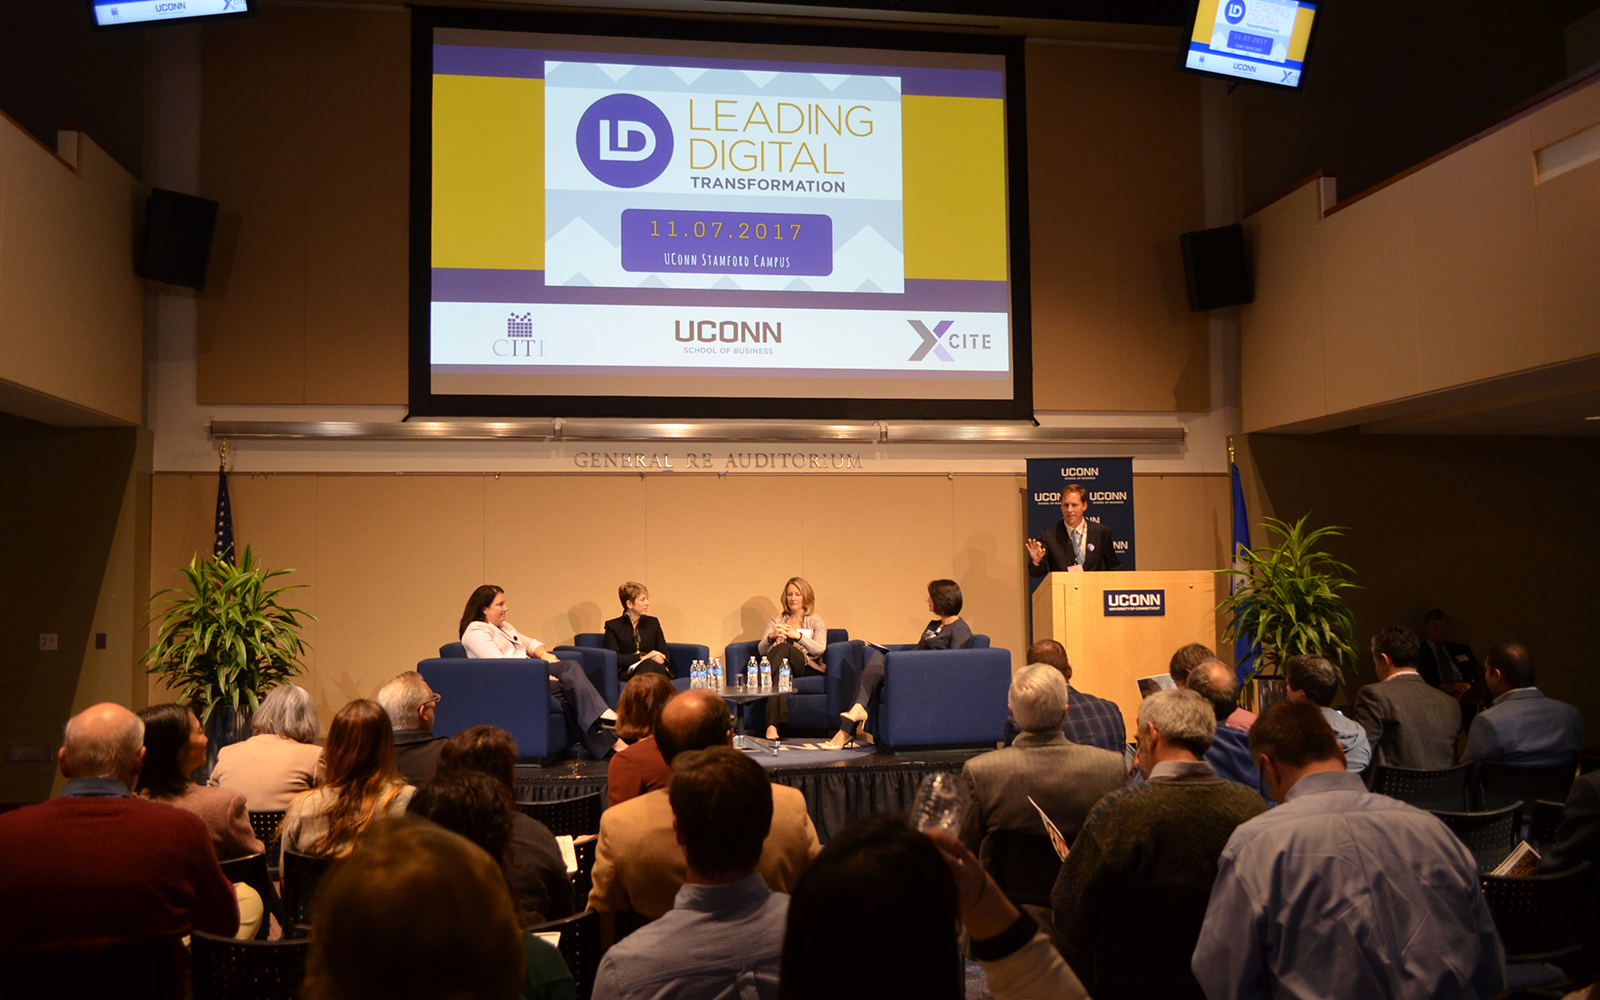 CIO panelists from Synchrony Financial, FactSet, and Stanley Black & Decker talk about Leading Digital Transformation (Katherine Ruiz/UConn School of Business)